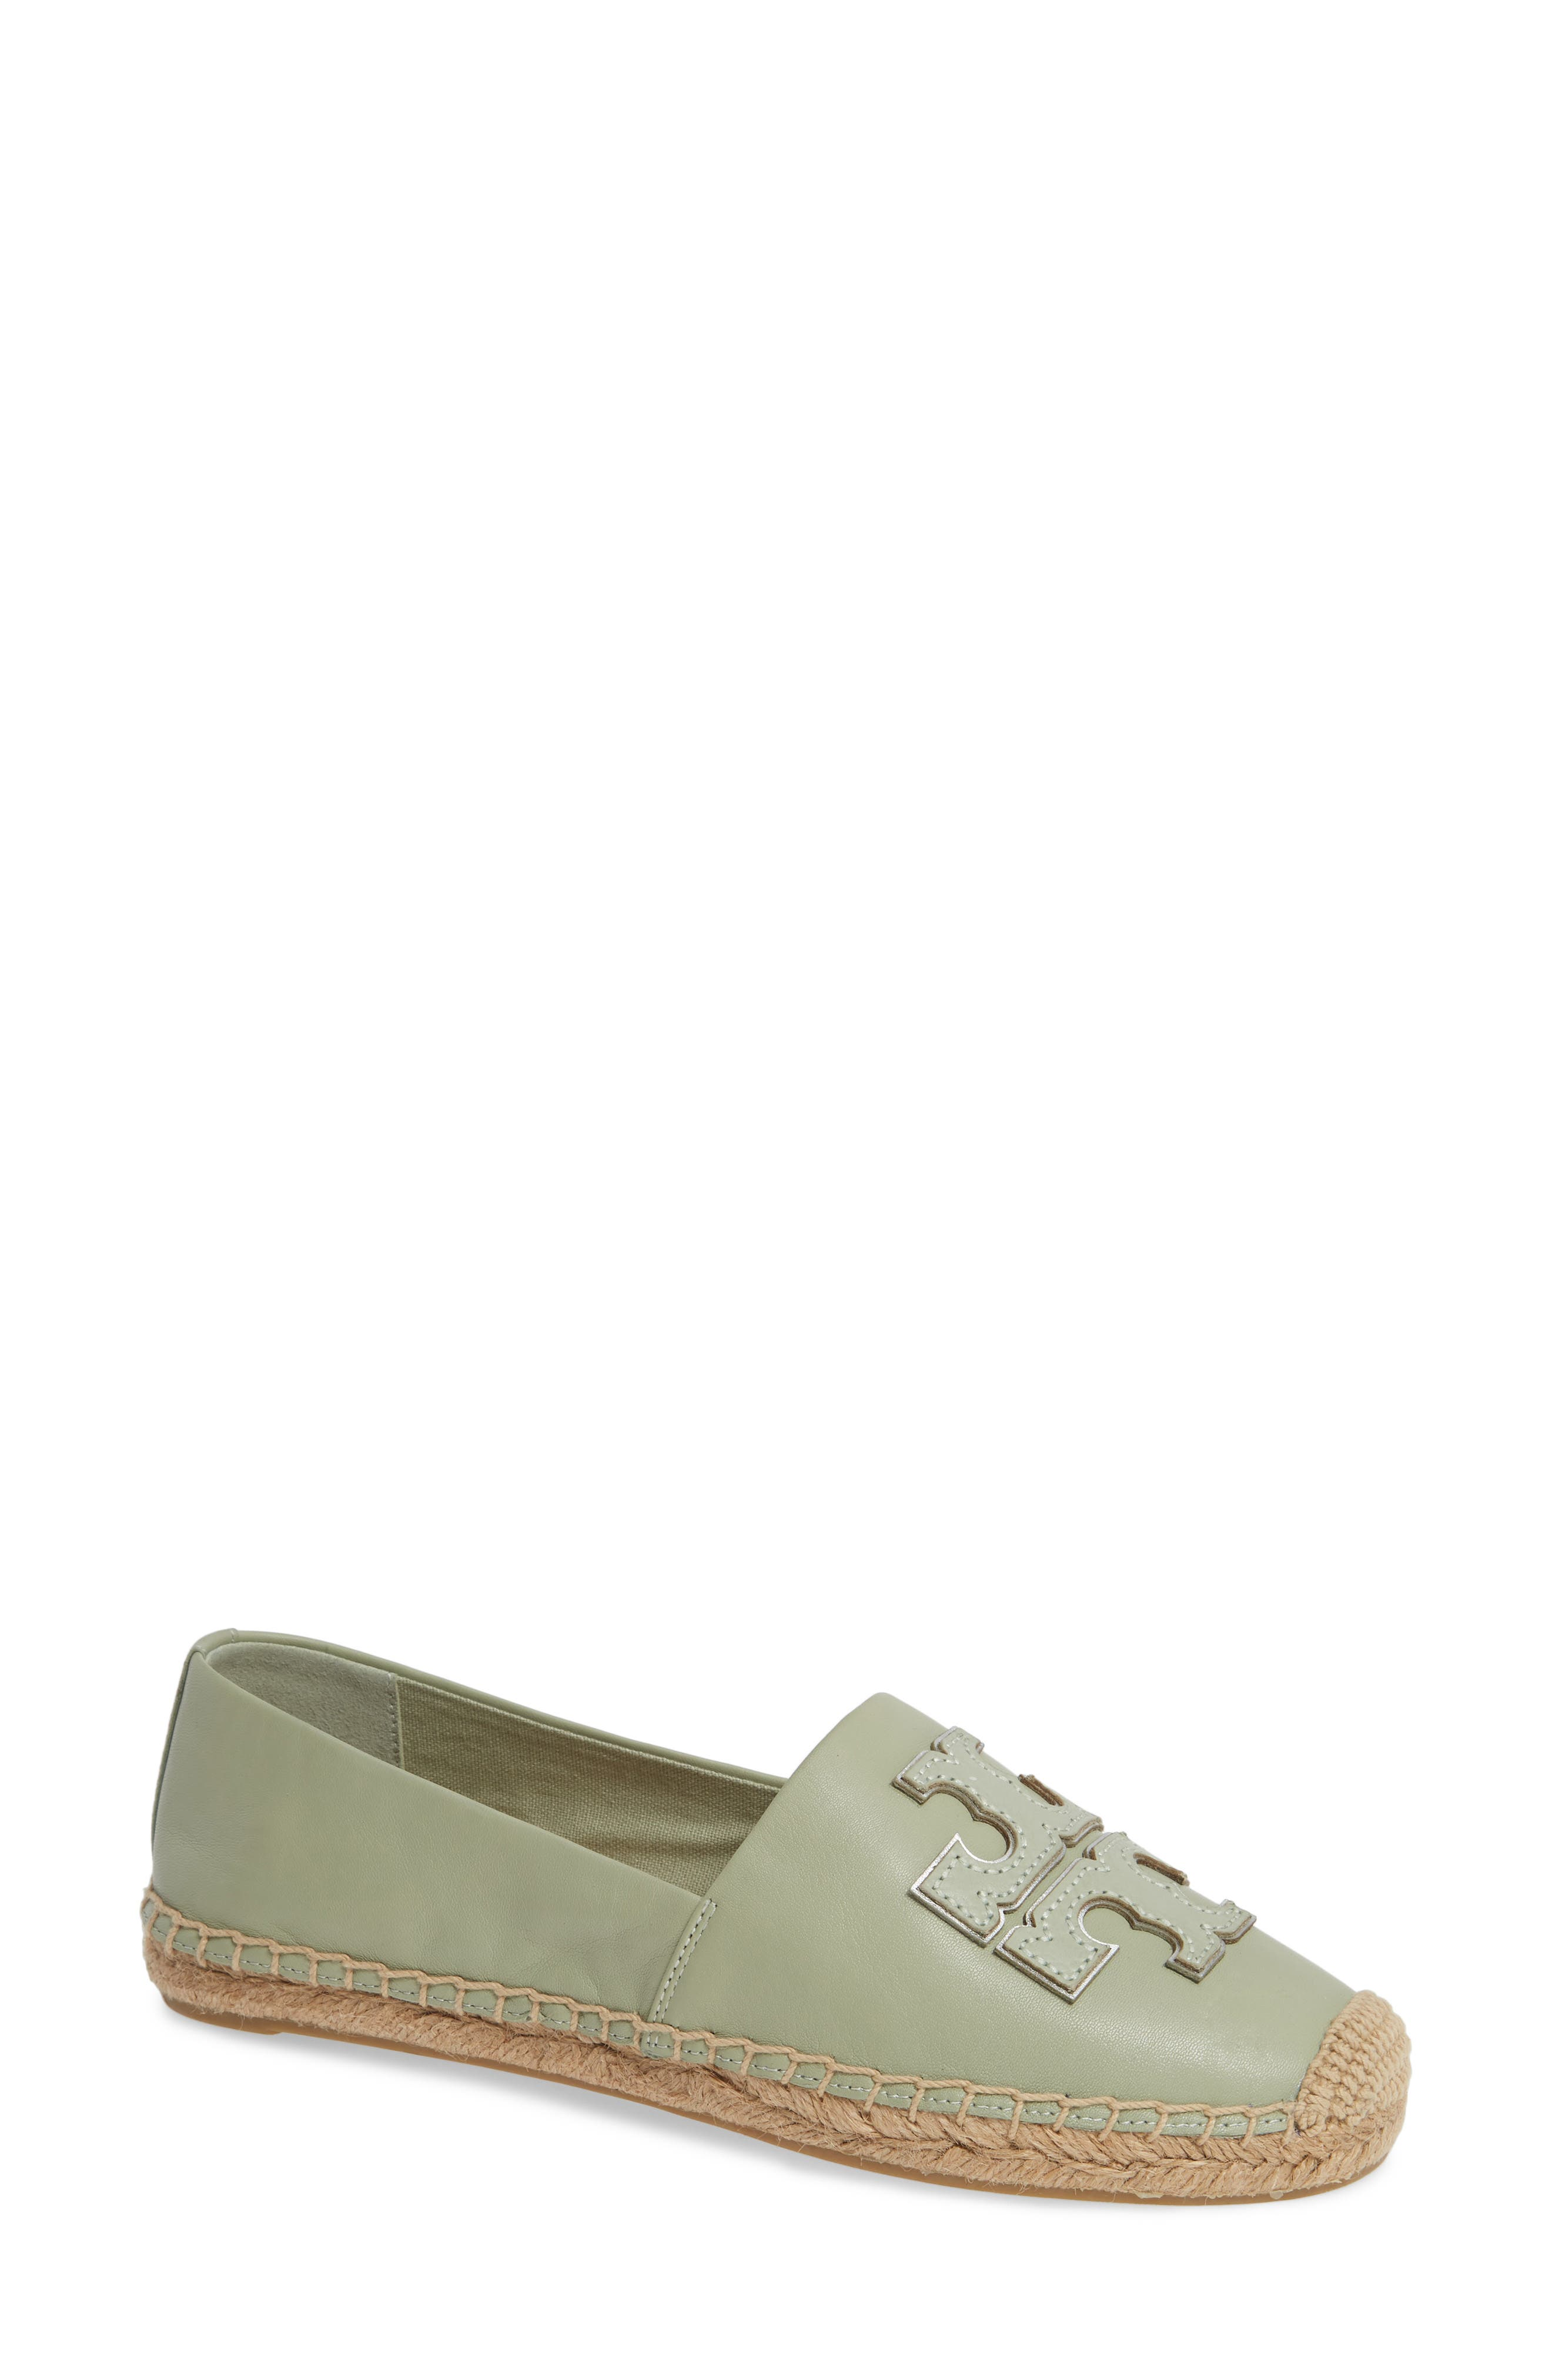 TORY BURCH, Ines Espadrille, Main thumbnail 1, color, GARDEN SAGE / SILVER